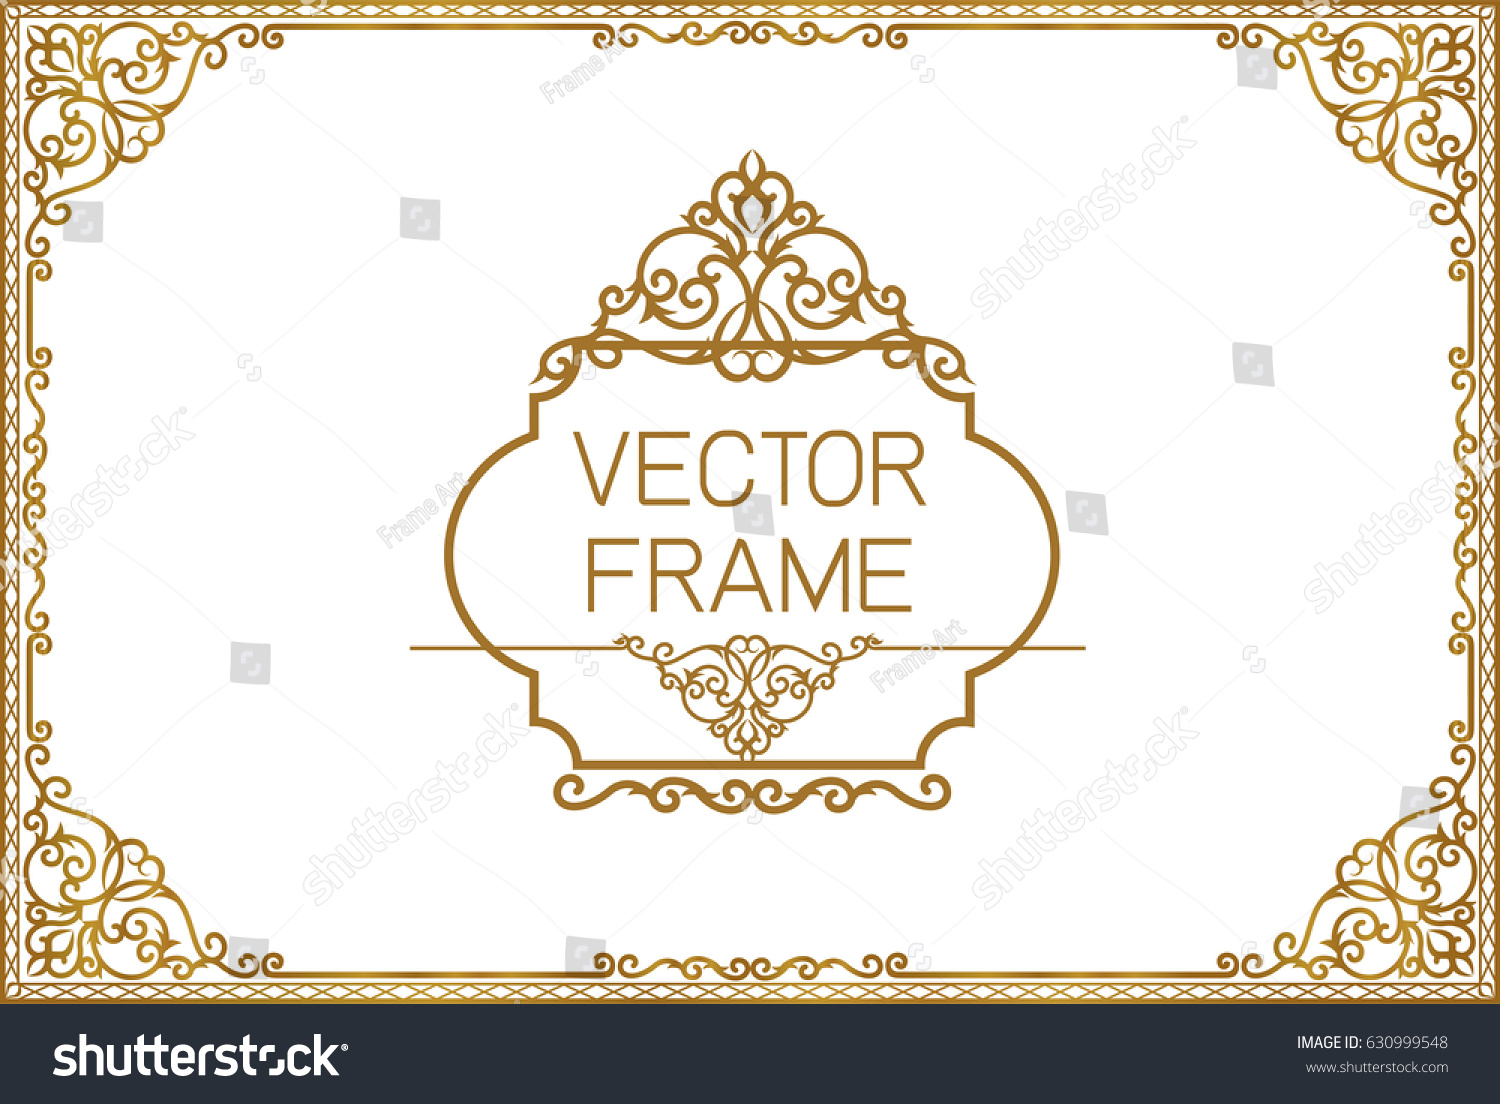 Gold border design frame photo template stock vector 630999548 gold border design frame photo template certificate template with luxury and modern pattern yadclub Image collections